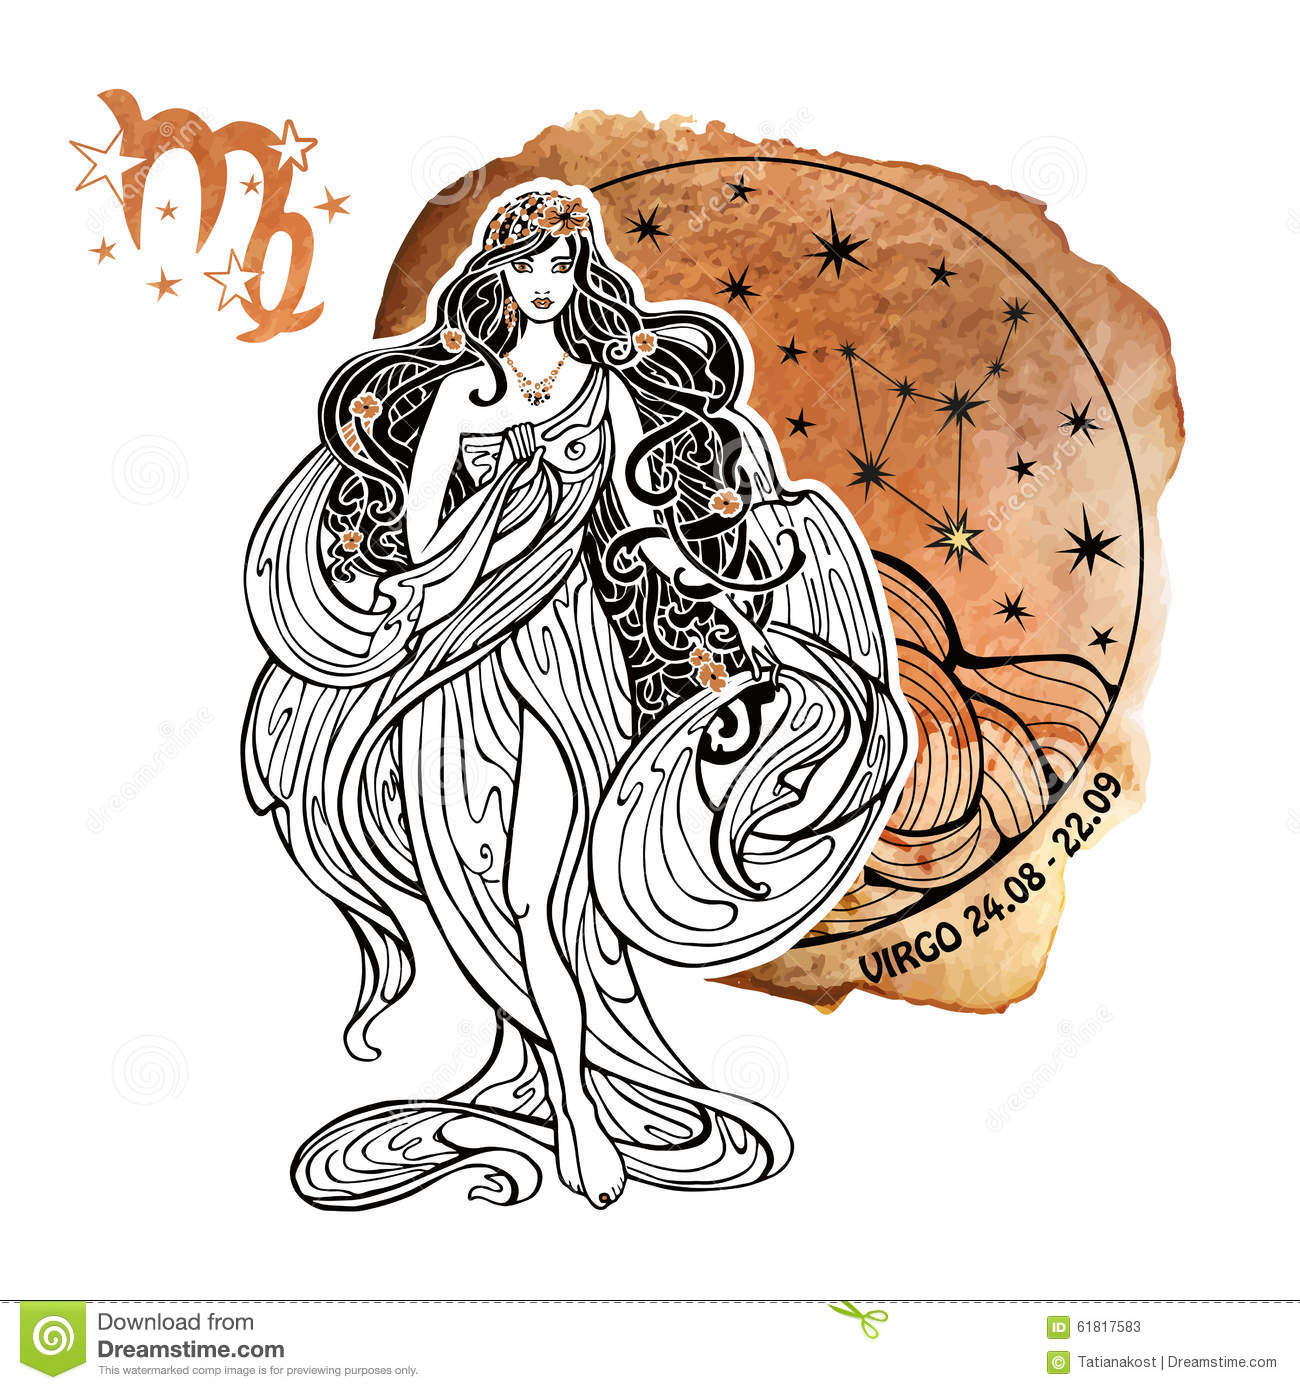 Virgo The Virgin Star Sign Royalty Free Stock Photo.